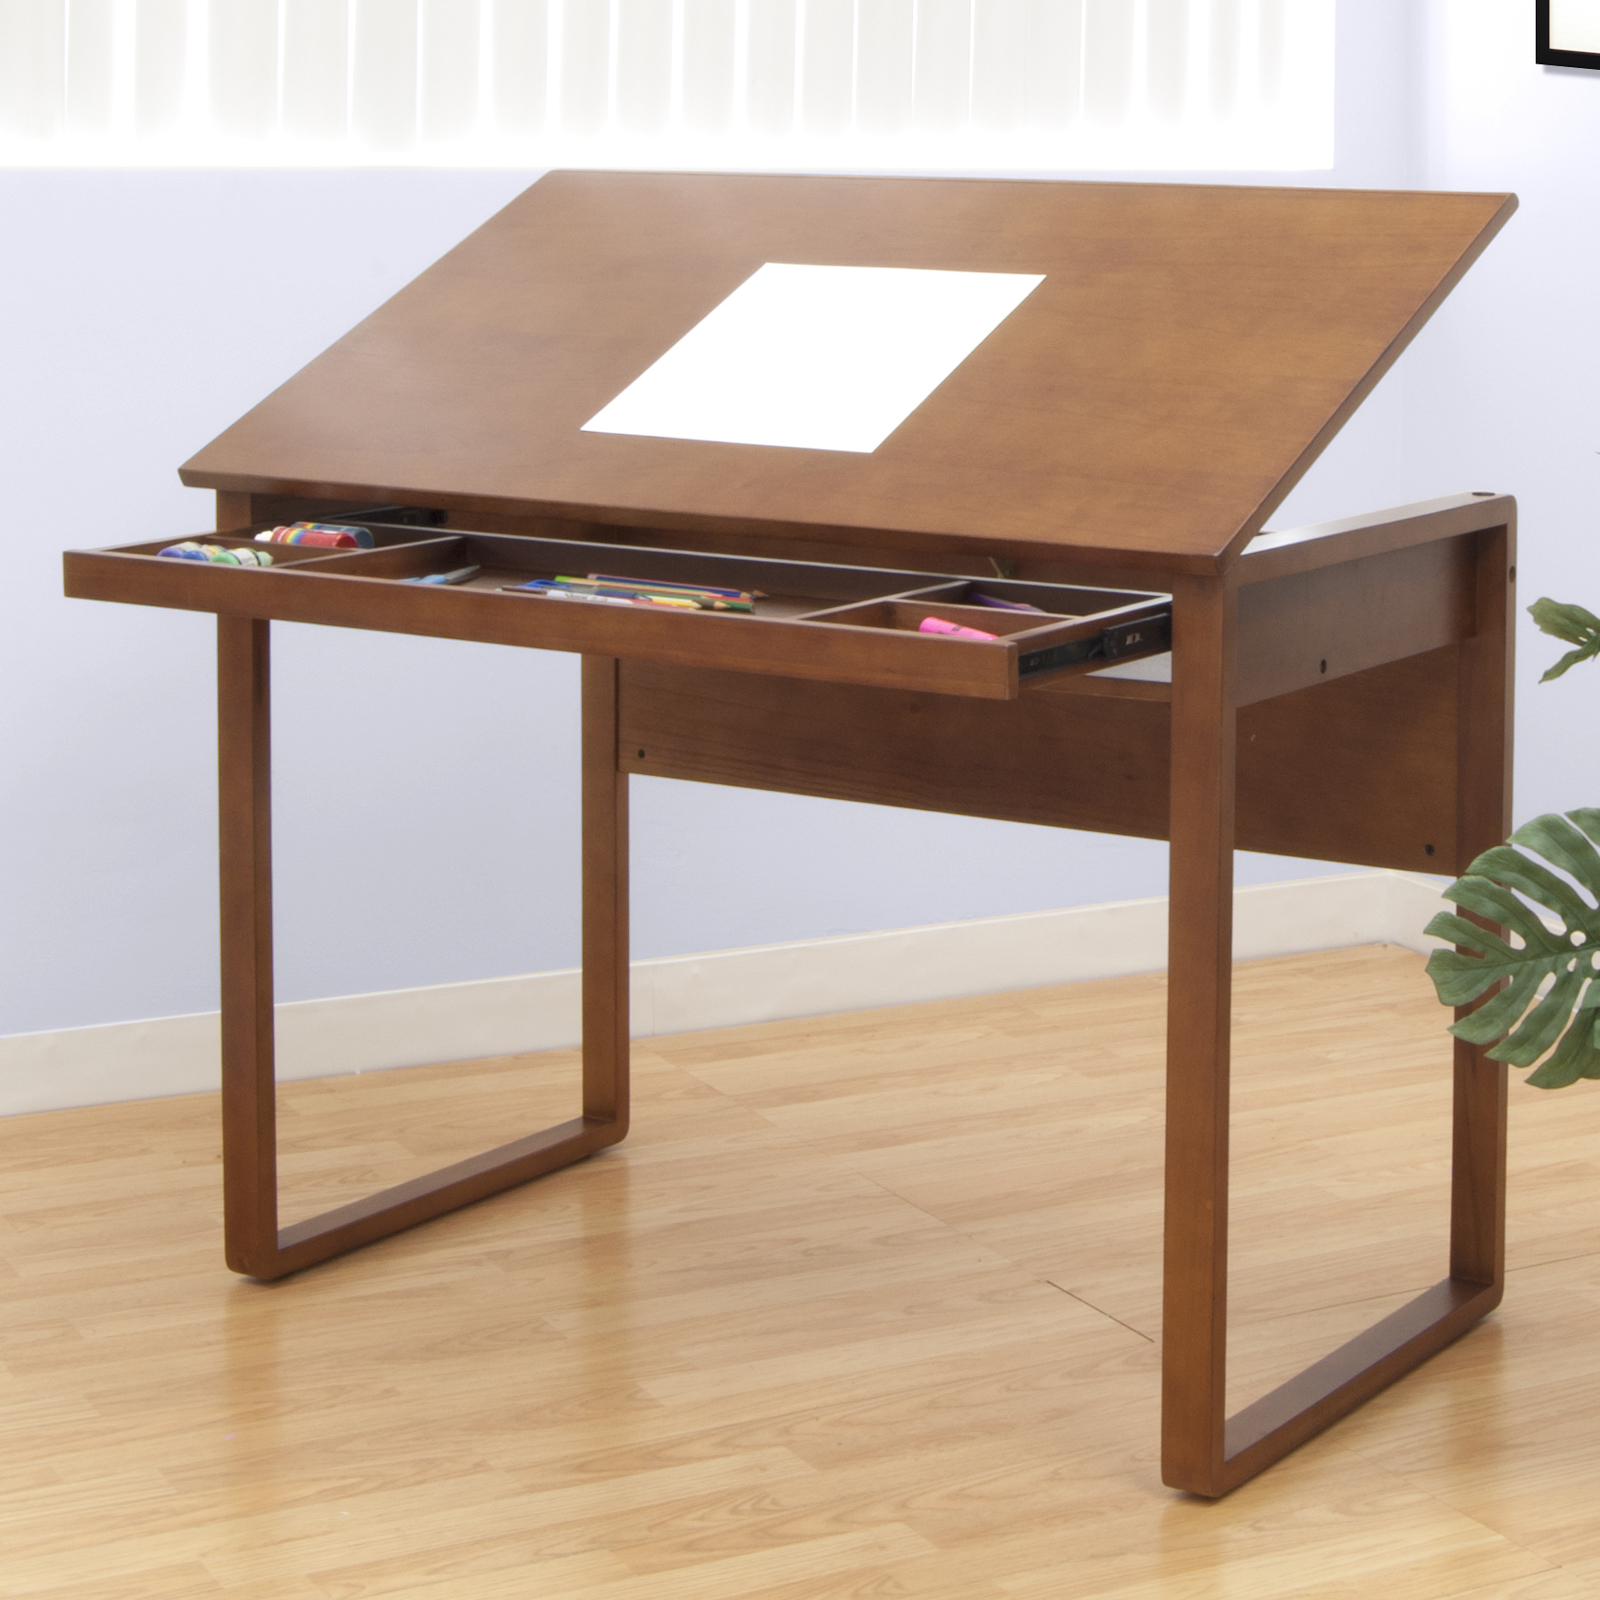 Wooden Studio Furniture ~ Ponderosa wooden drafting table by studio designs in kids